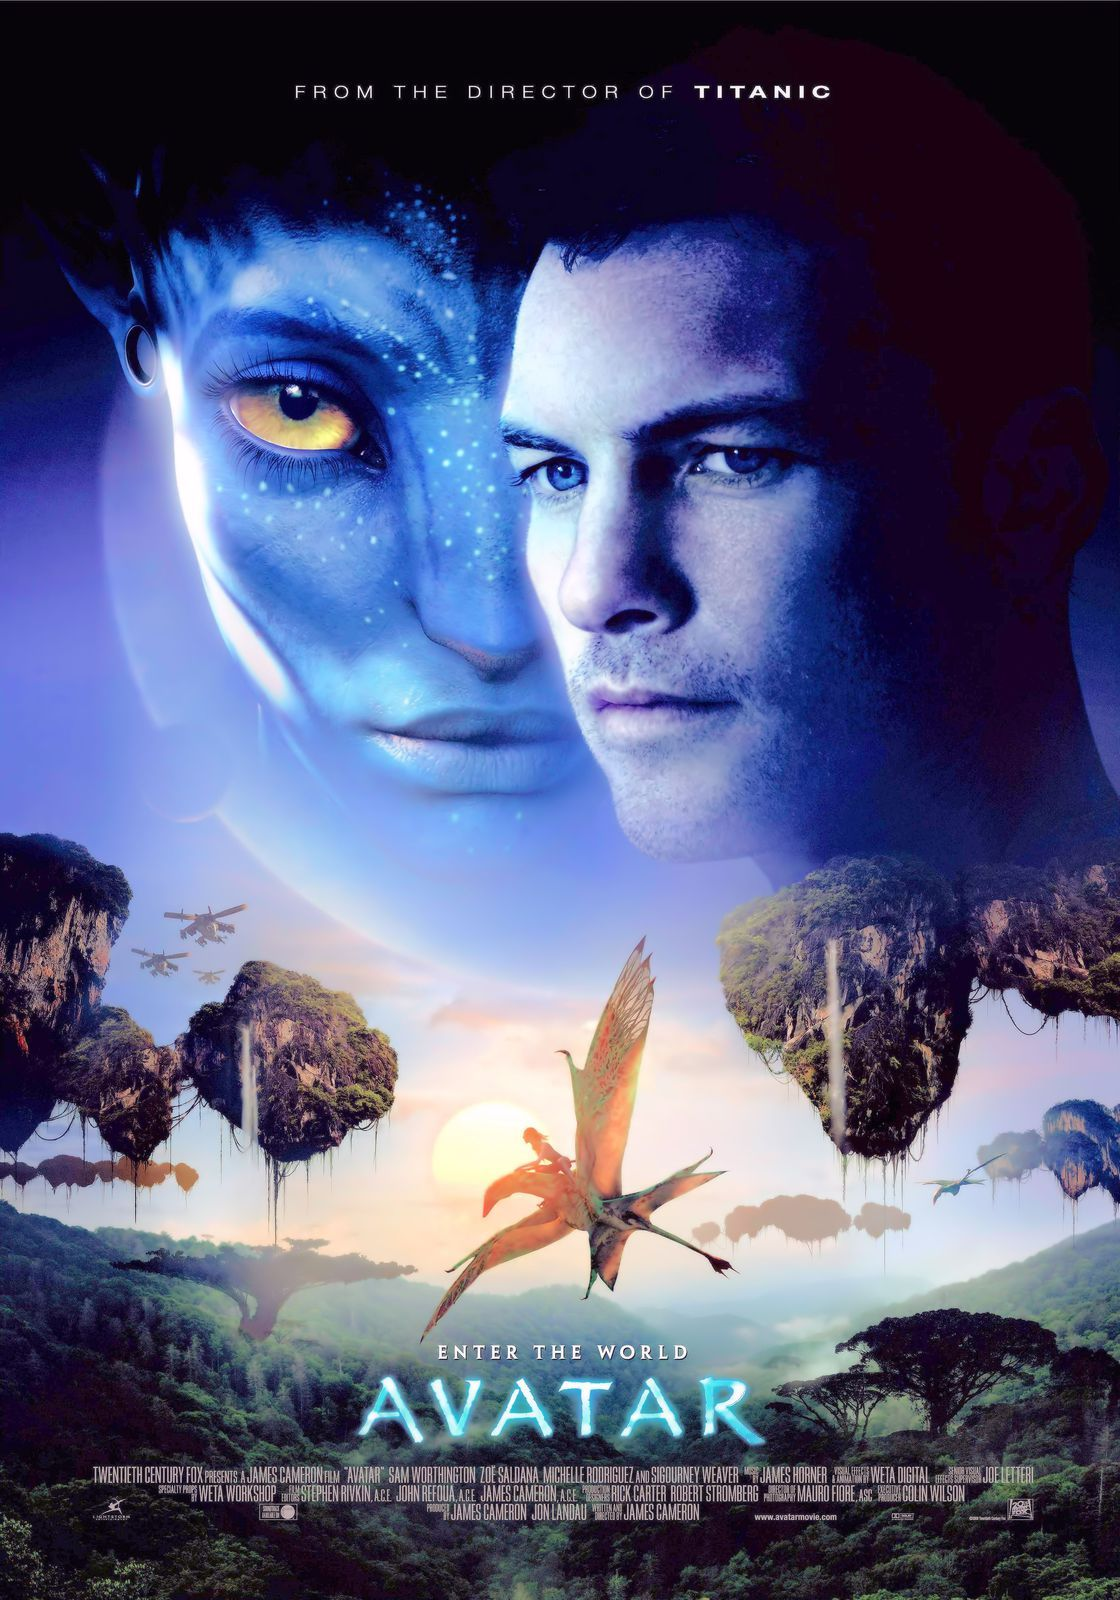 La Chambre Bleue Watch Online English Subtitles Avatar 2009 001 27 X 40 Movie Poster On Premium Photo Paper